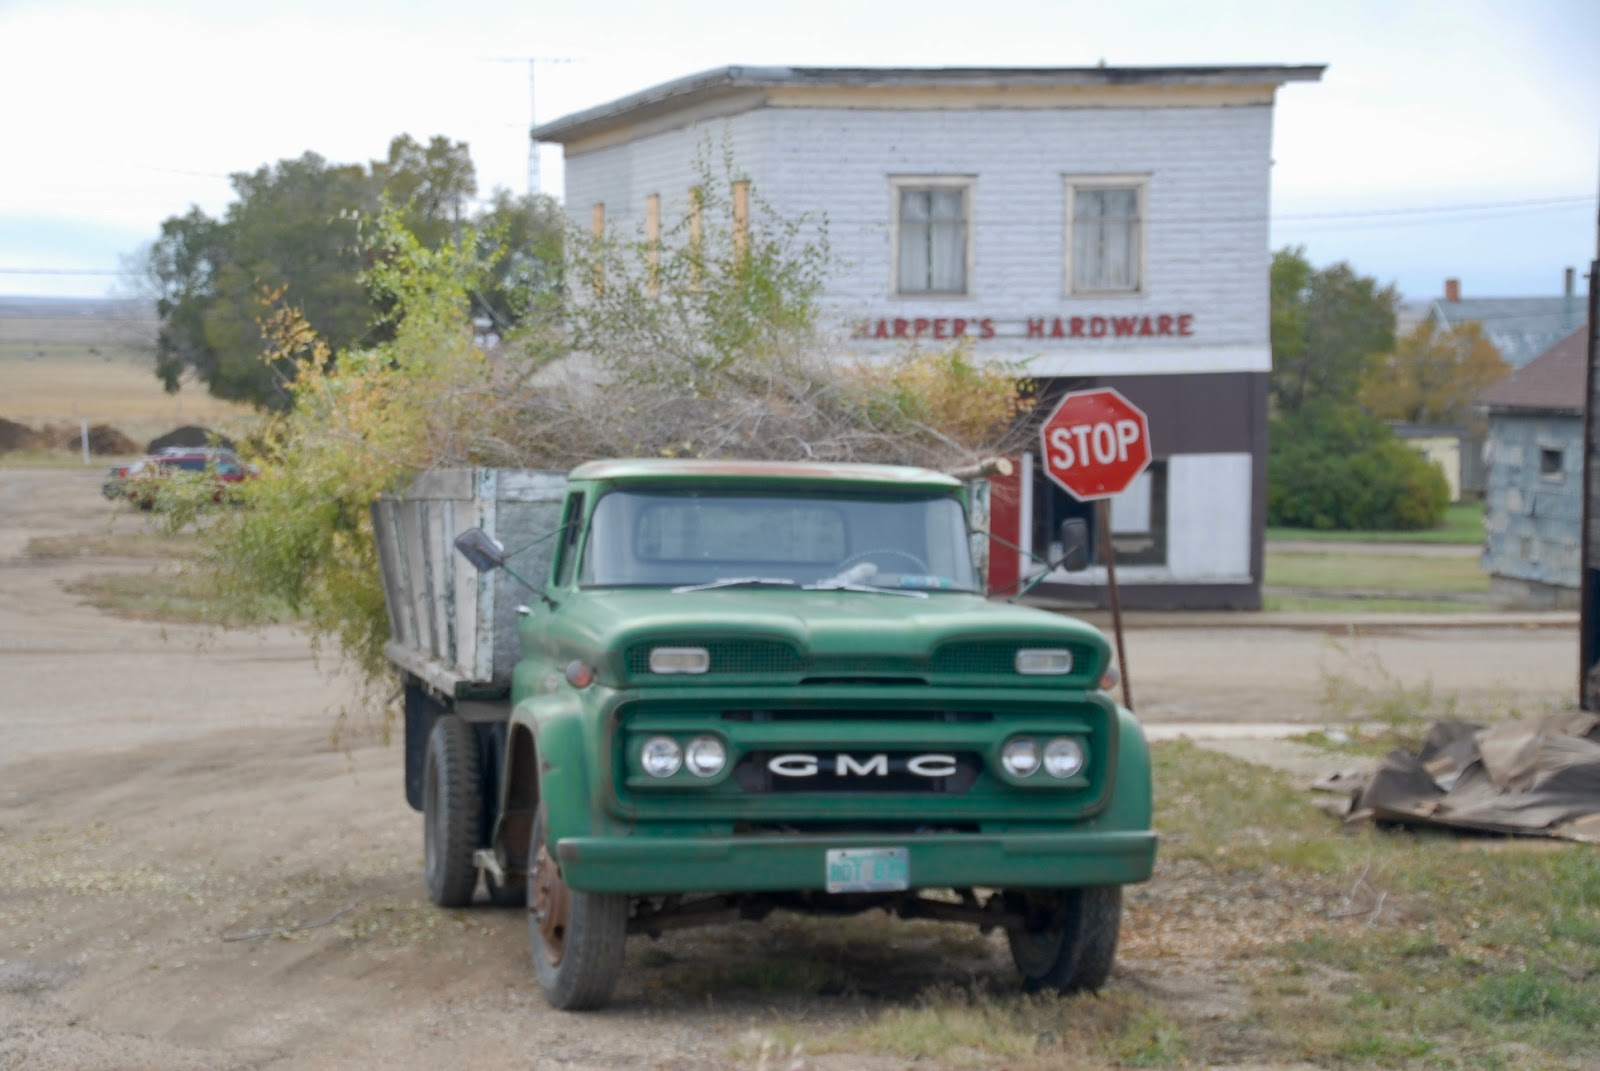 hight resolution of 1962 gmc 5000 from alex emond this green truck was parked in kincaid saskatchewan mid chore impressive front on this machine all business